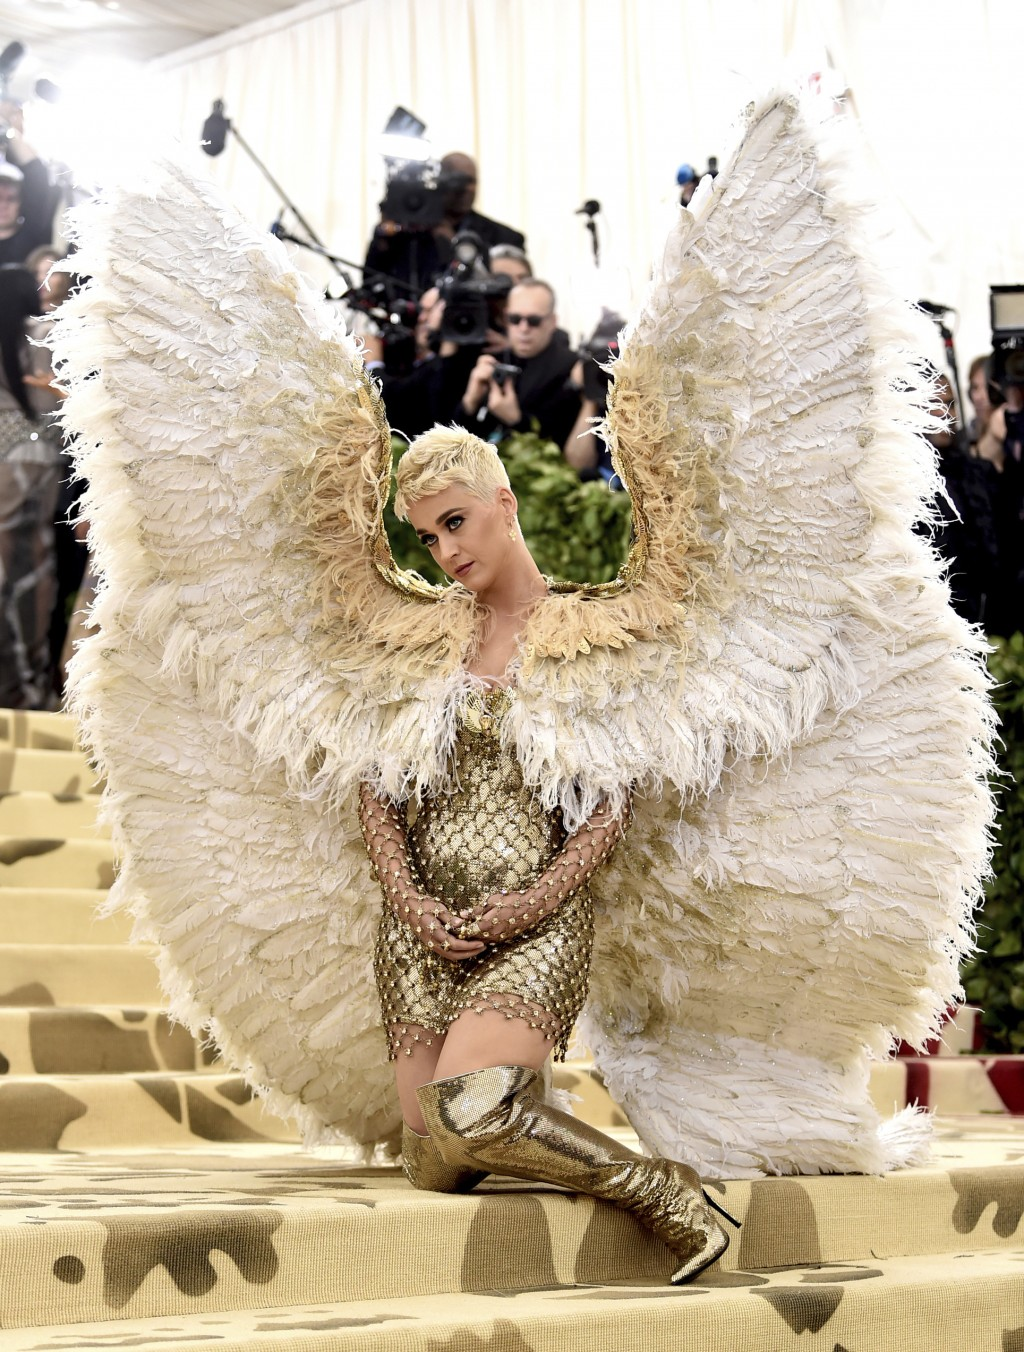 FILE - In this May 7, 2018 file photo, singer Katy Perry wears angel wings at The Metropolitan Museum of Art's Costume Institute benefit gala celebrat...